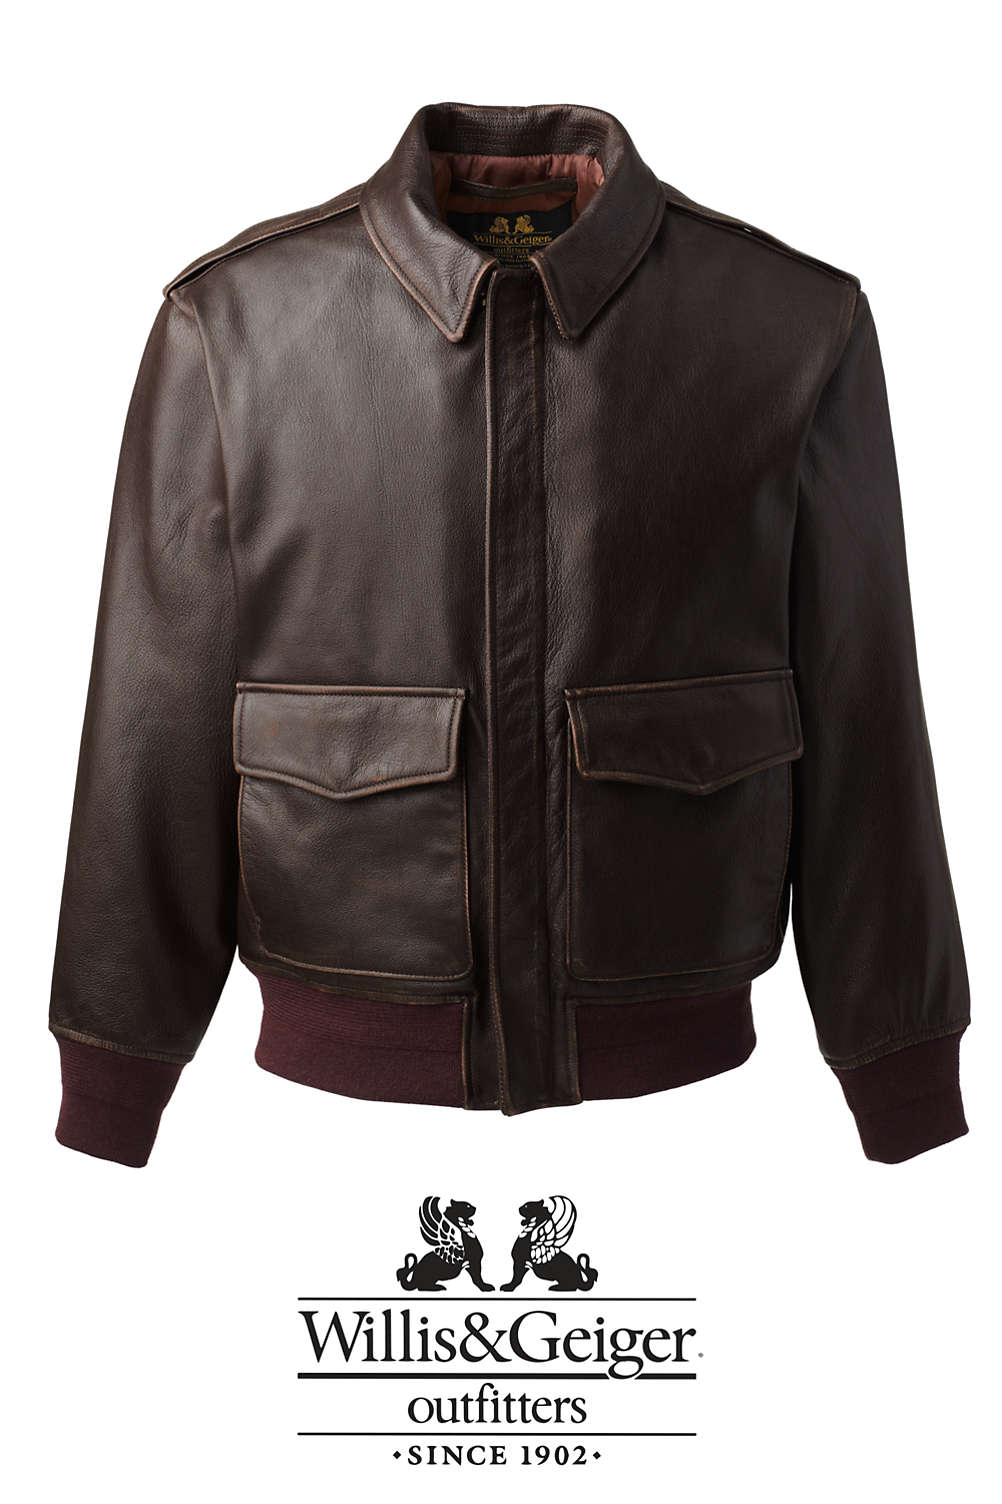 555a75f6cdec Men's Willis & Geiger Leather Bomber Jacket from Lands' End